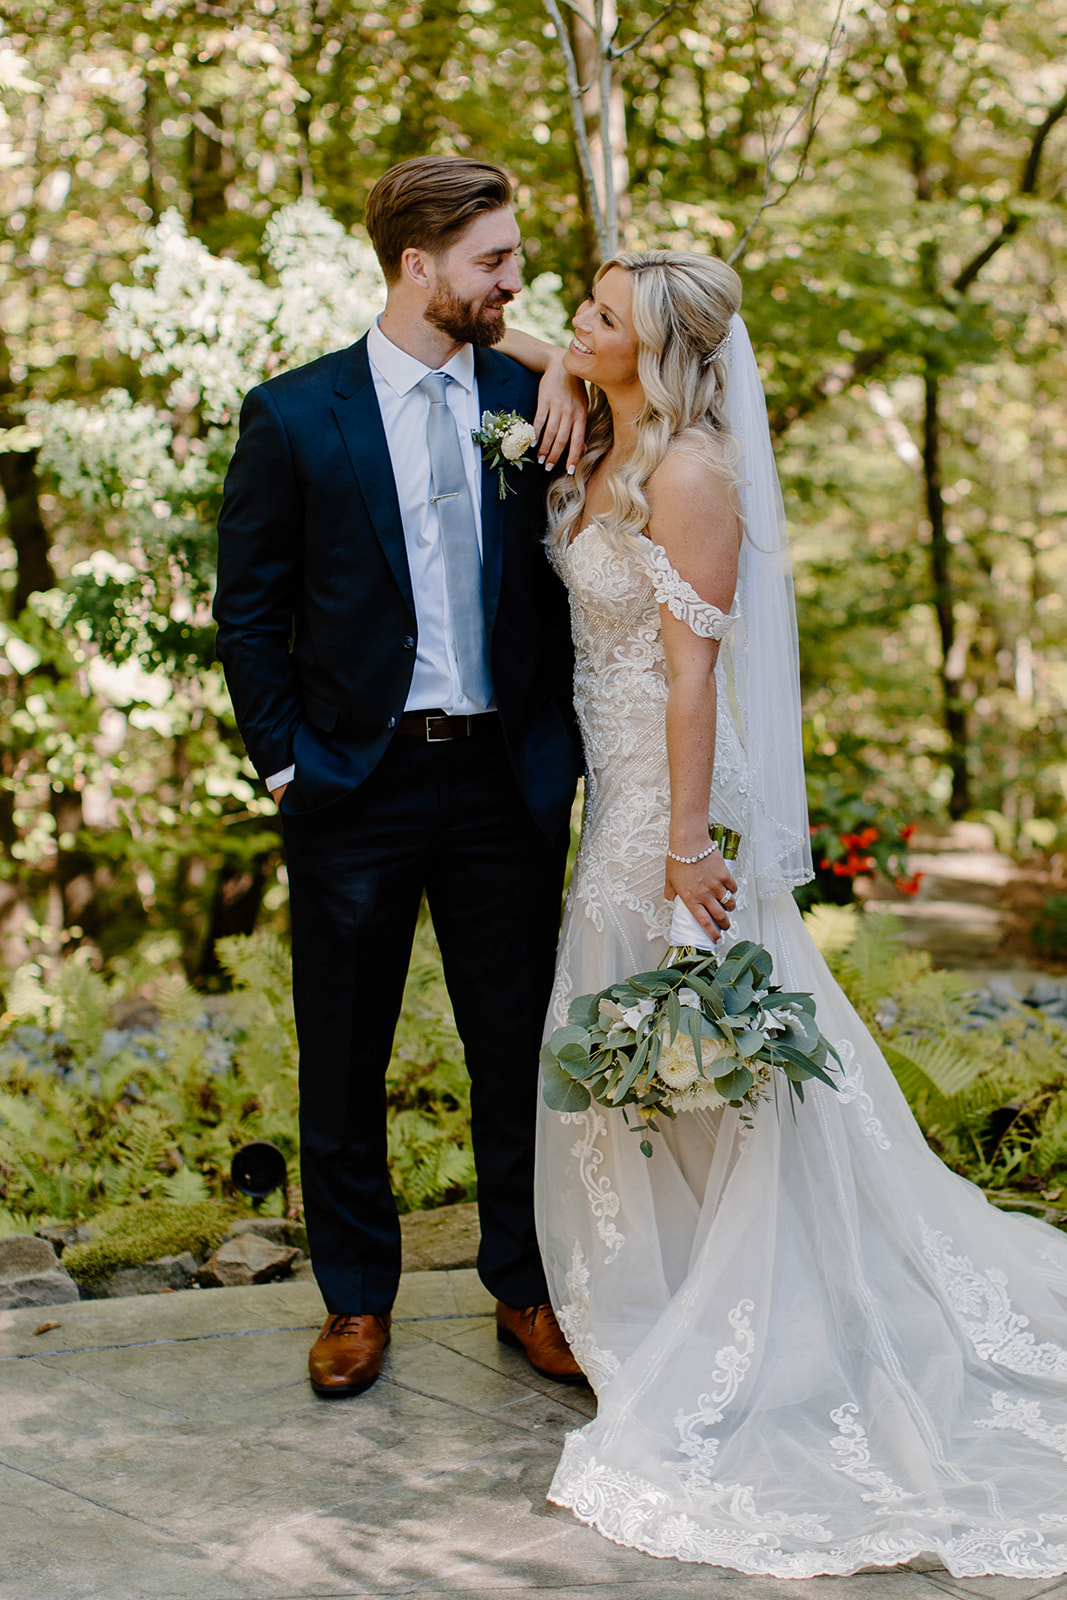 Jenna and Evan - Real Weddings by The Groomsman Suit